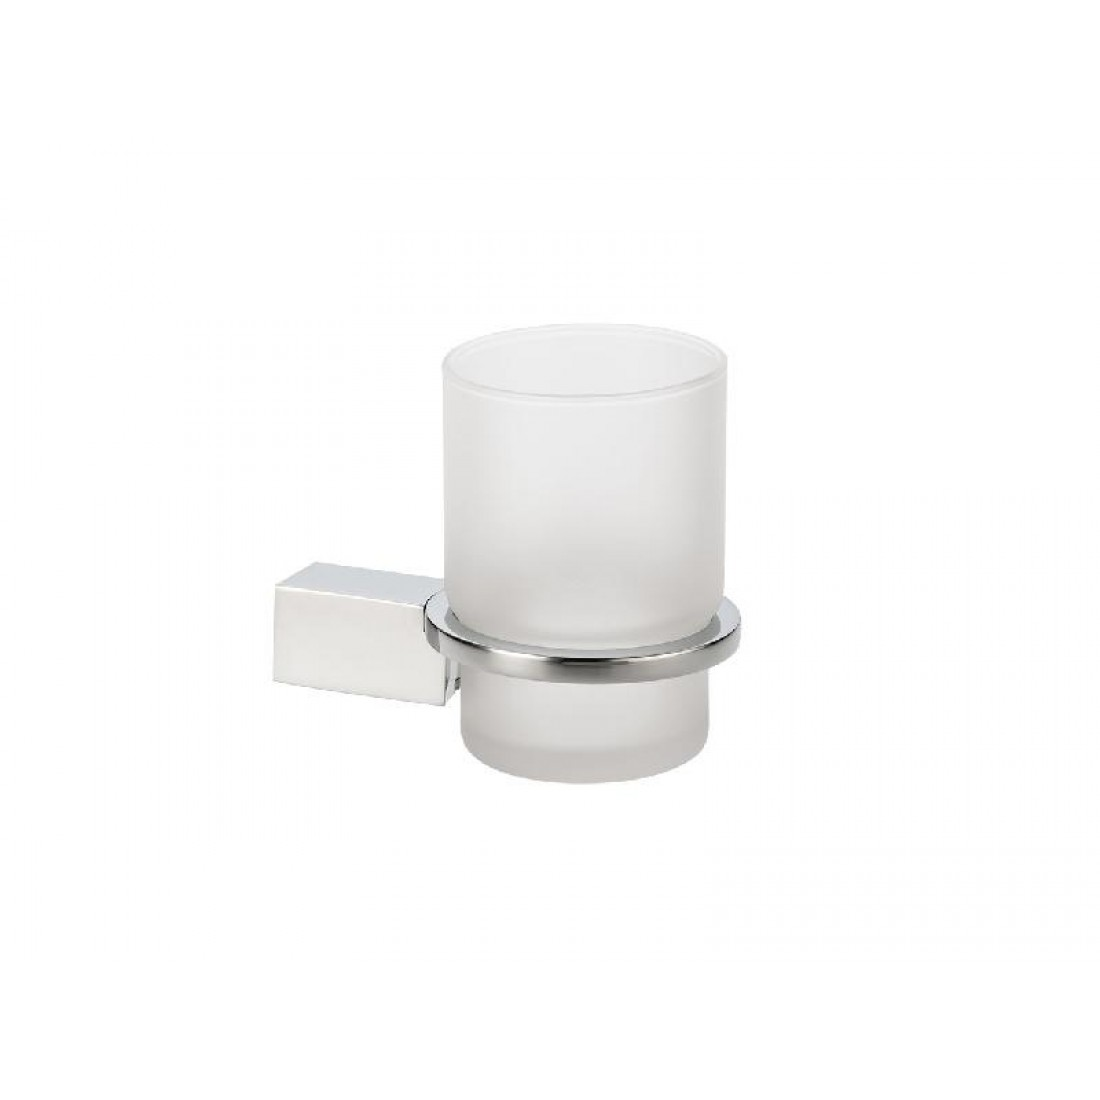 9cb520b7b36 KAPPA tumbler holder frosted glass wall mounted | kappa | ΕΙΔΗ ...